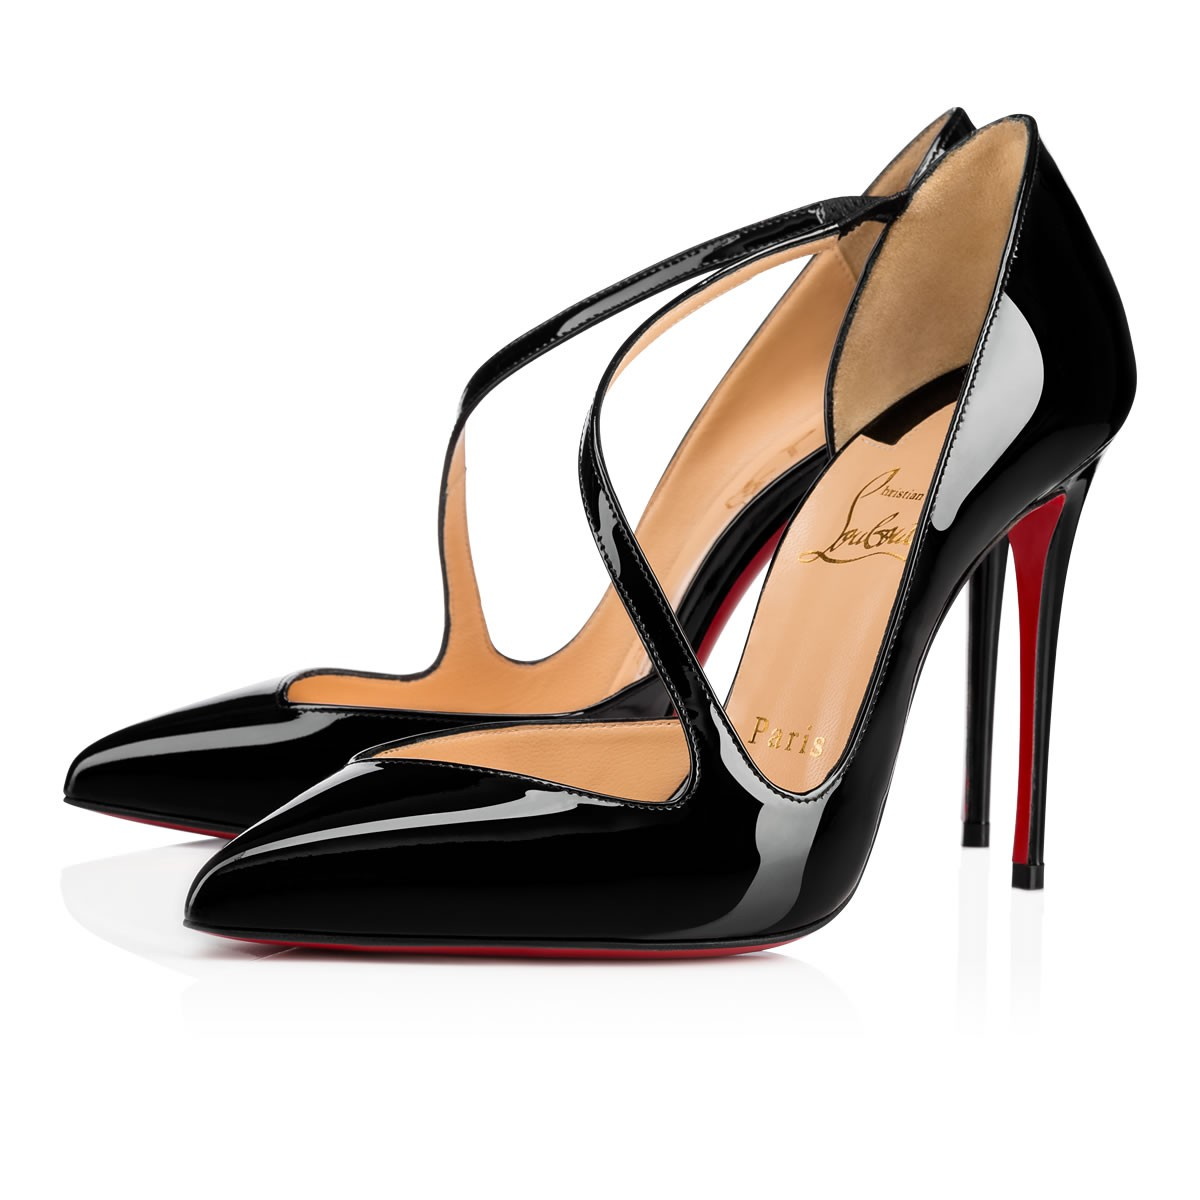 newest dc0c1 00709 Jumping 100 Black Patent Leather - Women Shoes - Christian Louboutin